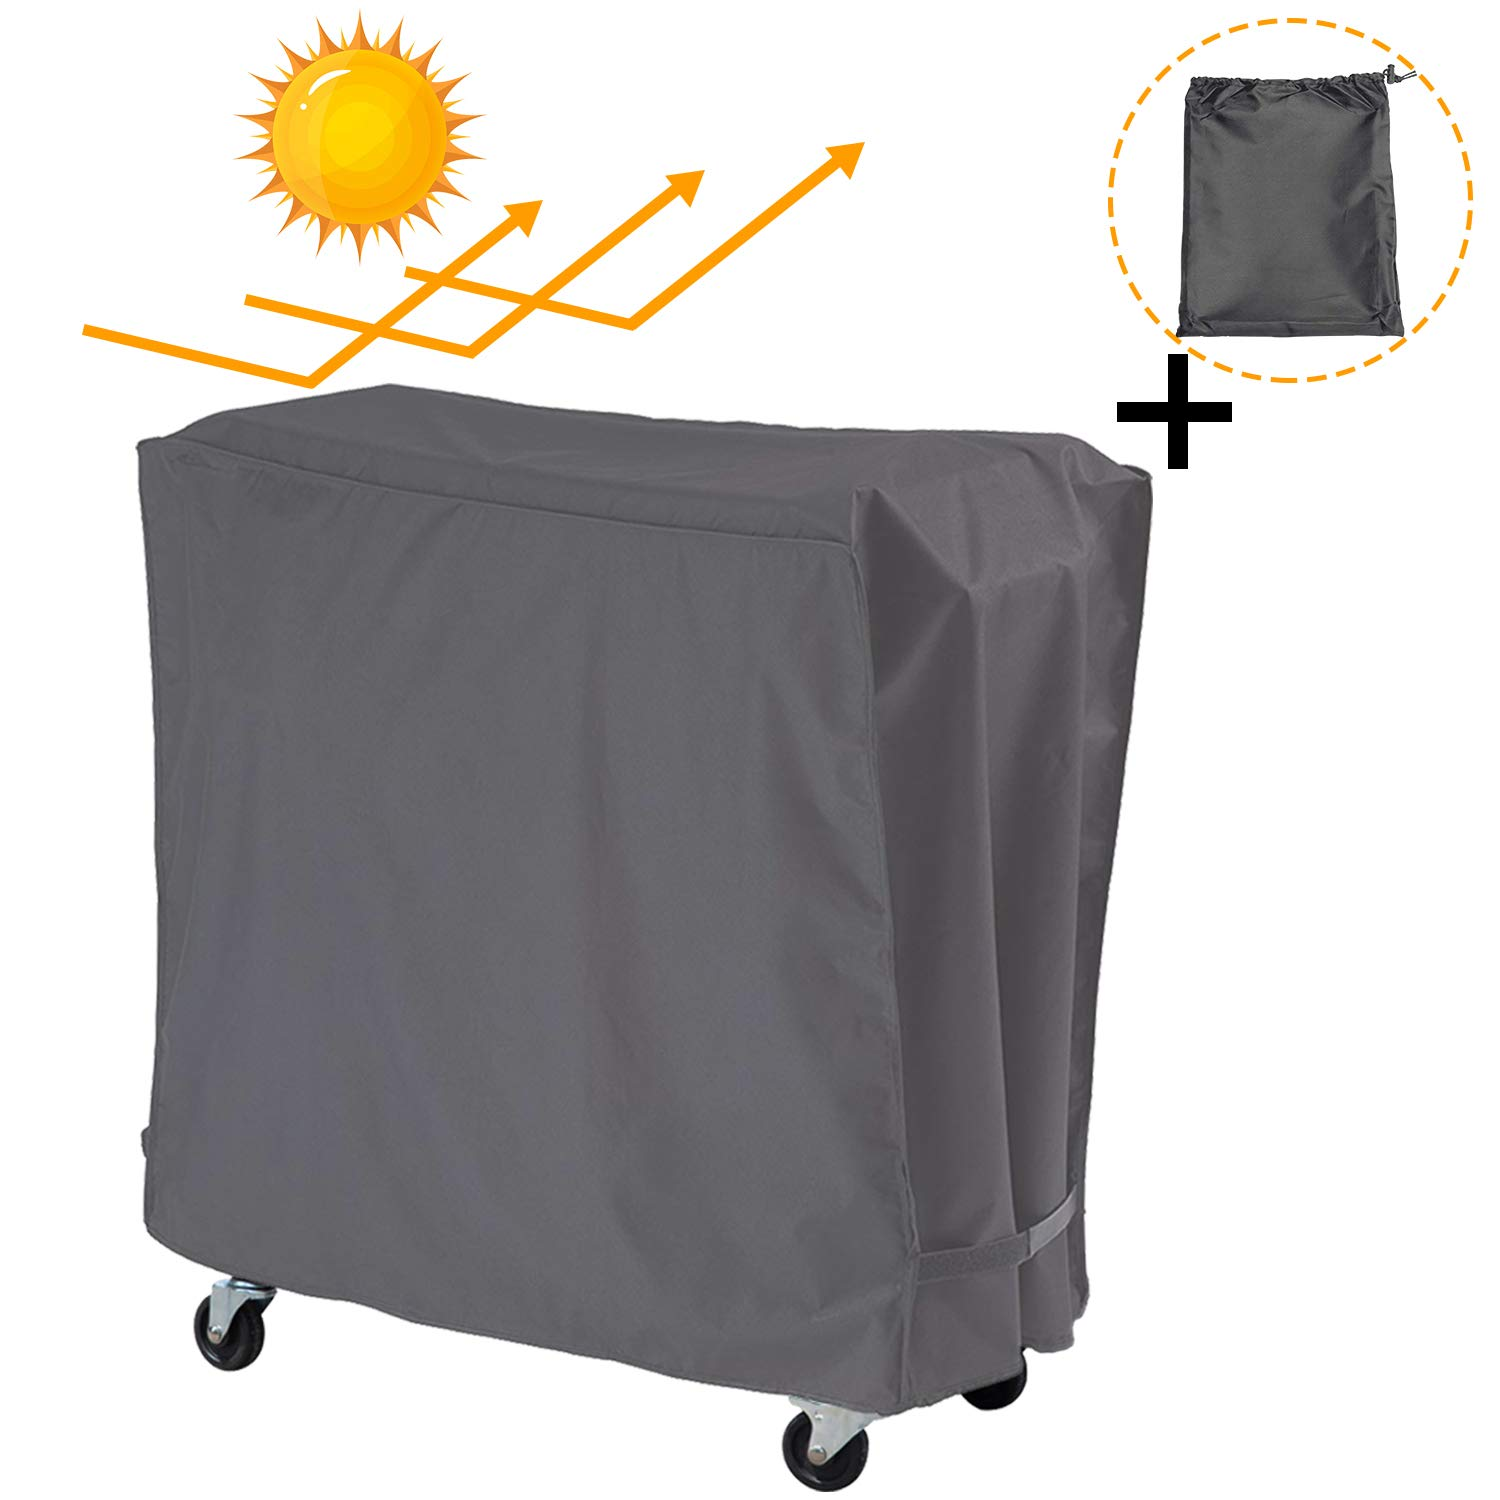 Patio Outdoor Cooler Cart Cover with UV Coating- Fits 80 Quart Rolling Coolers Patio Cooler,Beverage Cart, Rolling Ice Chest, Waterproof Protective Cover (Grey) by Covolo